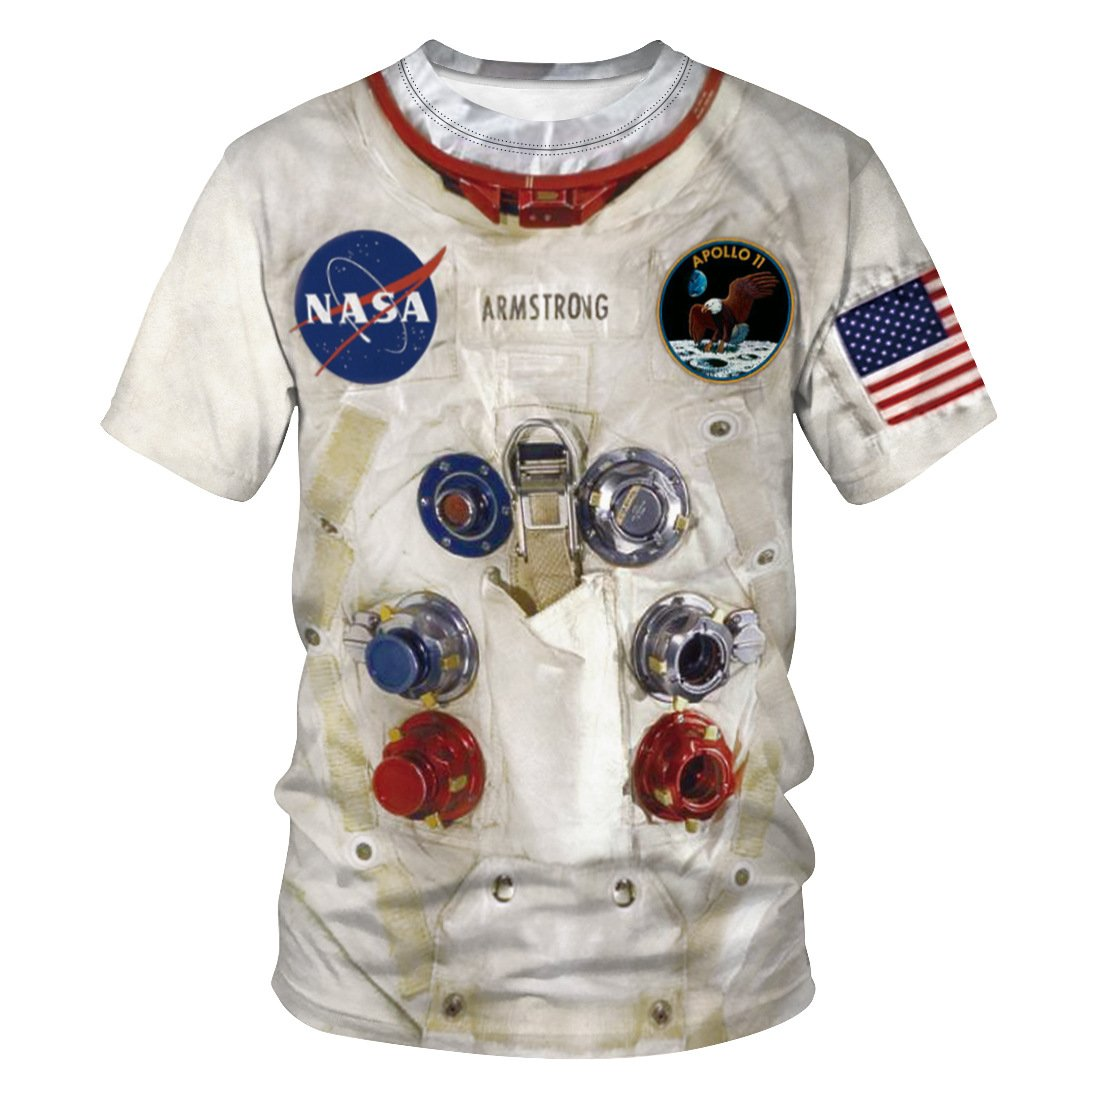 3D Astronaut Space Suit NASA Printed Funny Men T-shirt Loose Casual Novelty Short Sleeve Tees Top